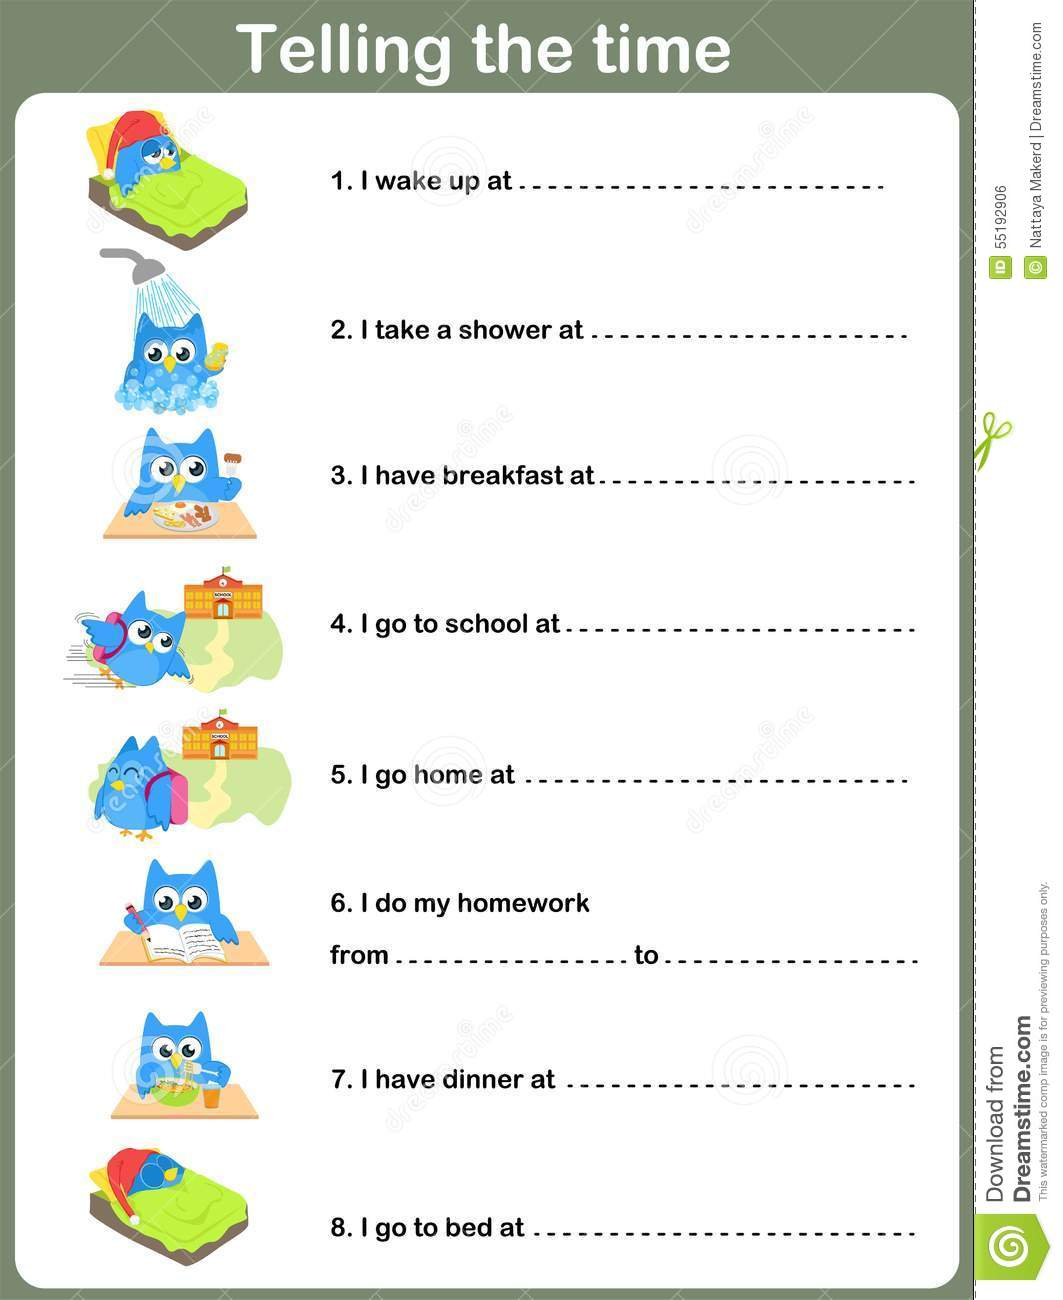 Daily Routines Worksheet. - Telling The Time Stock Vector - Image ...